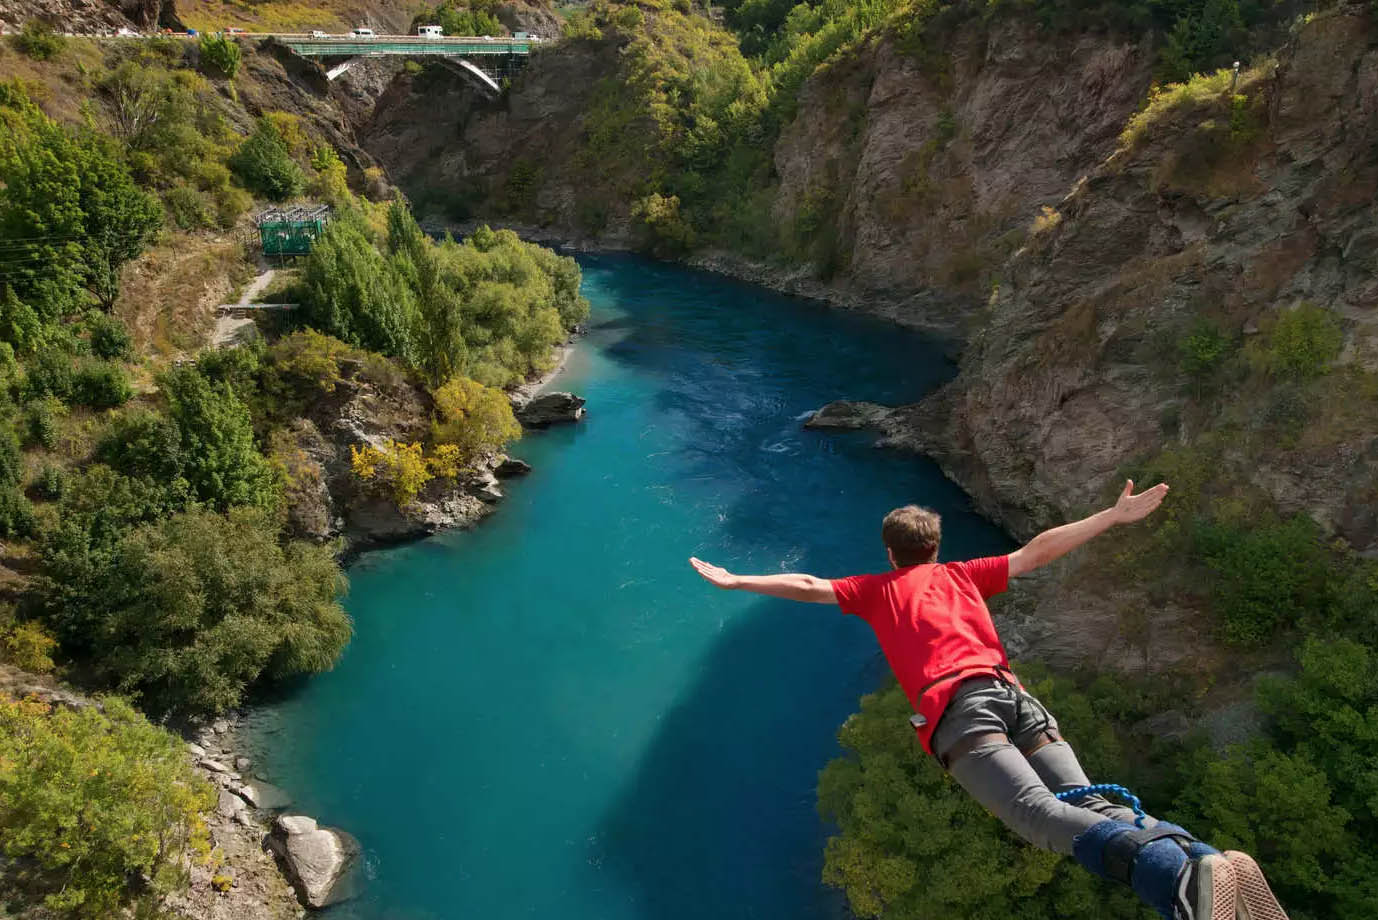 kawarau bridge bungy jump queenstown new zealand